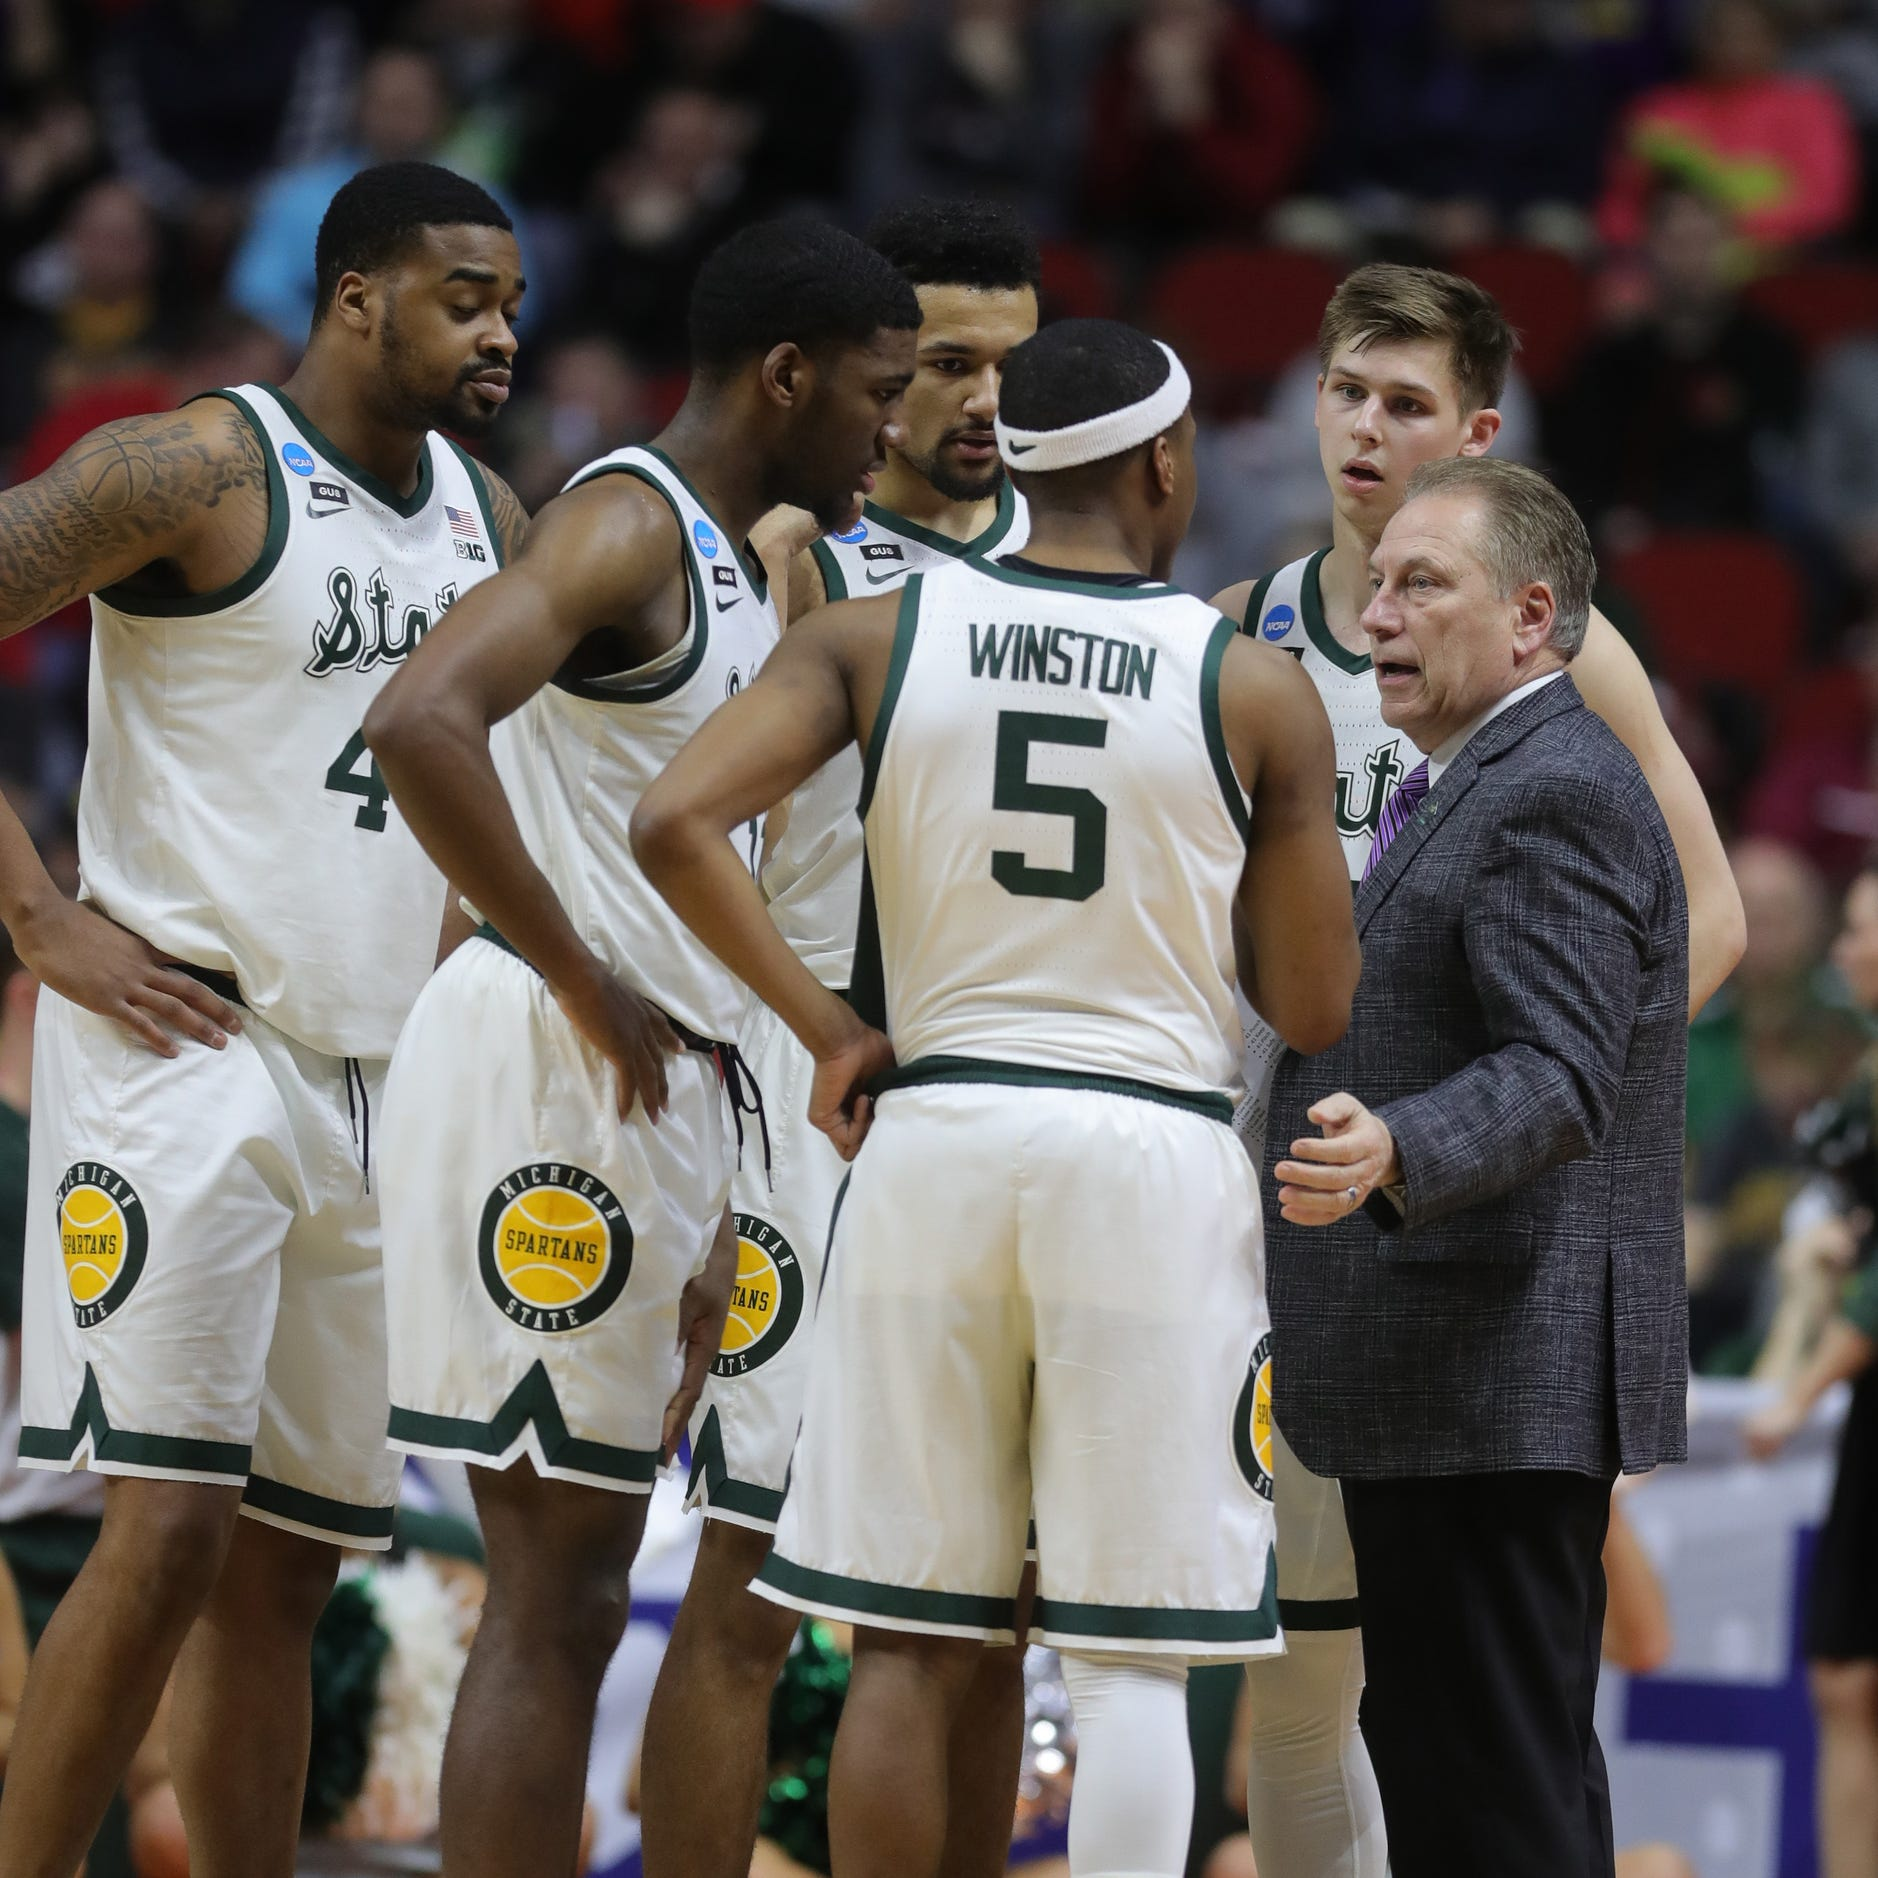 Michigan State's Tom Izzo on Aaron Henry: Ridiculous the way it blew up